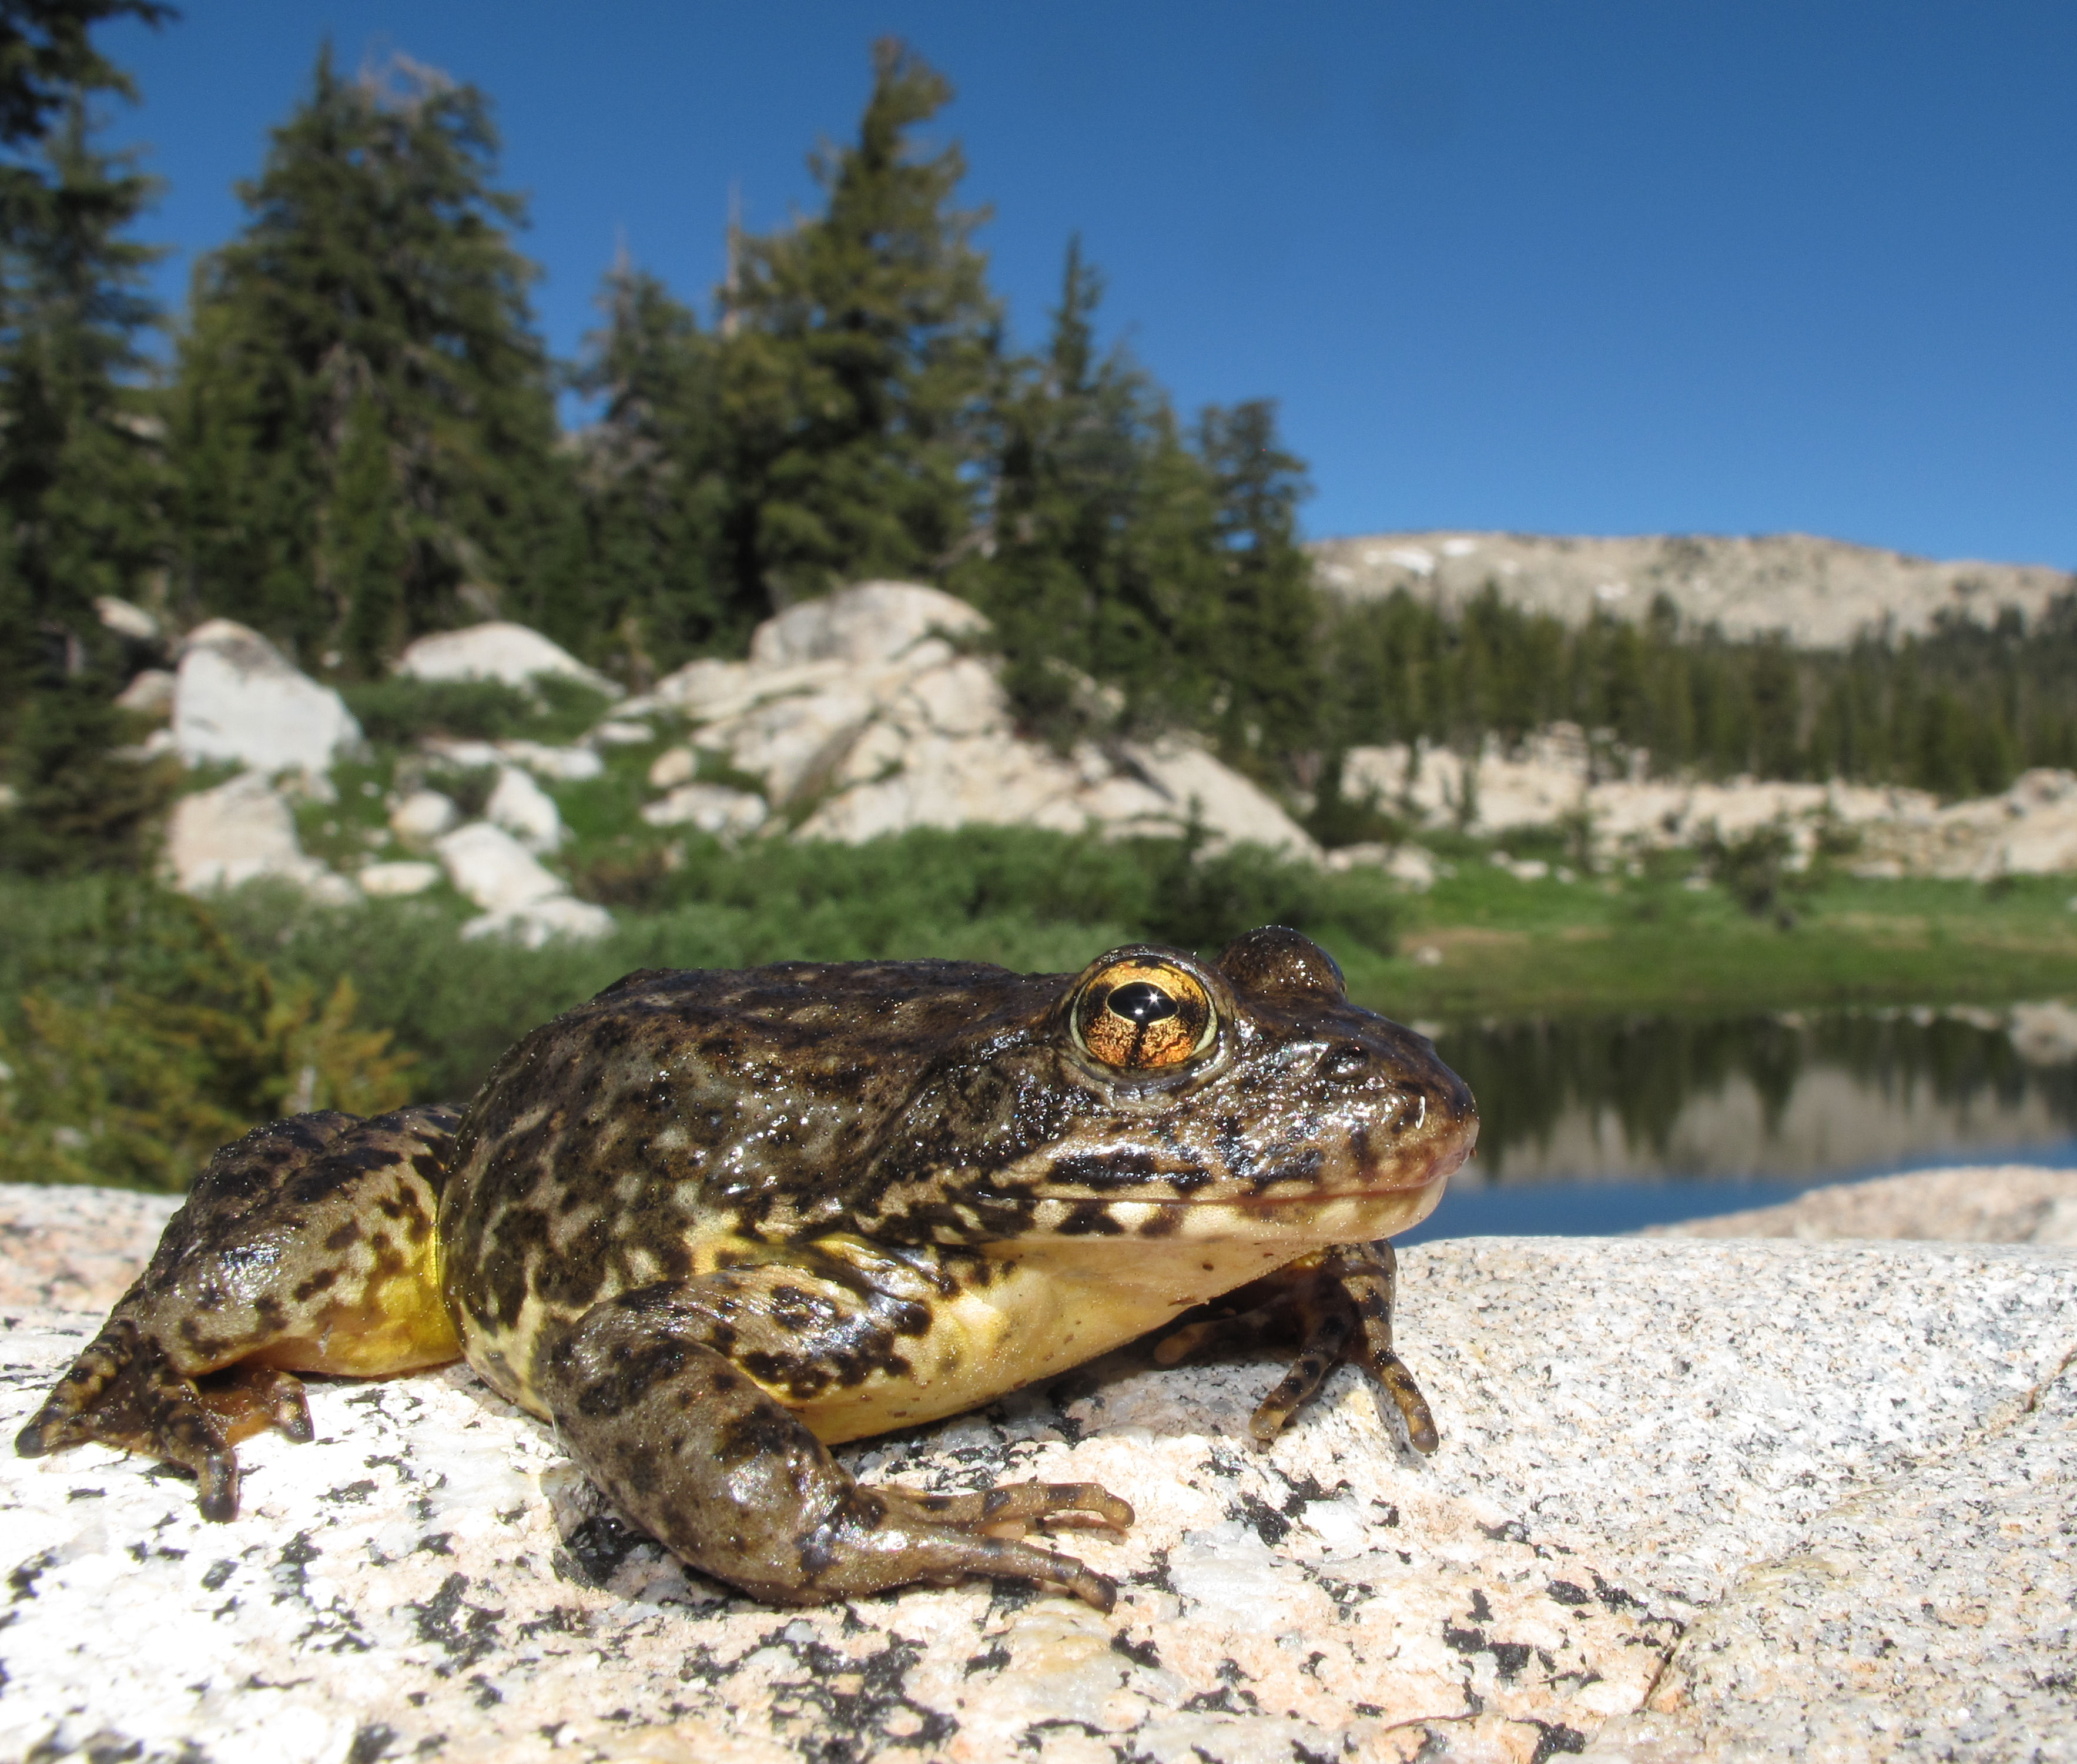 Sierra Nevada yellow-legged frog in Yosemite National Park<br />Photo by: D Edmonds